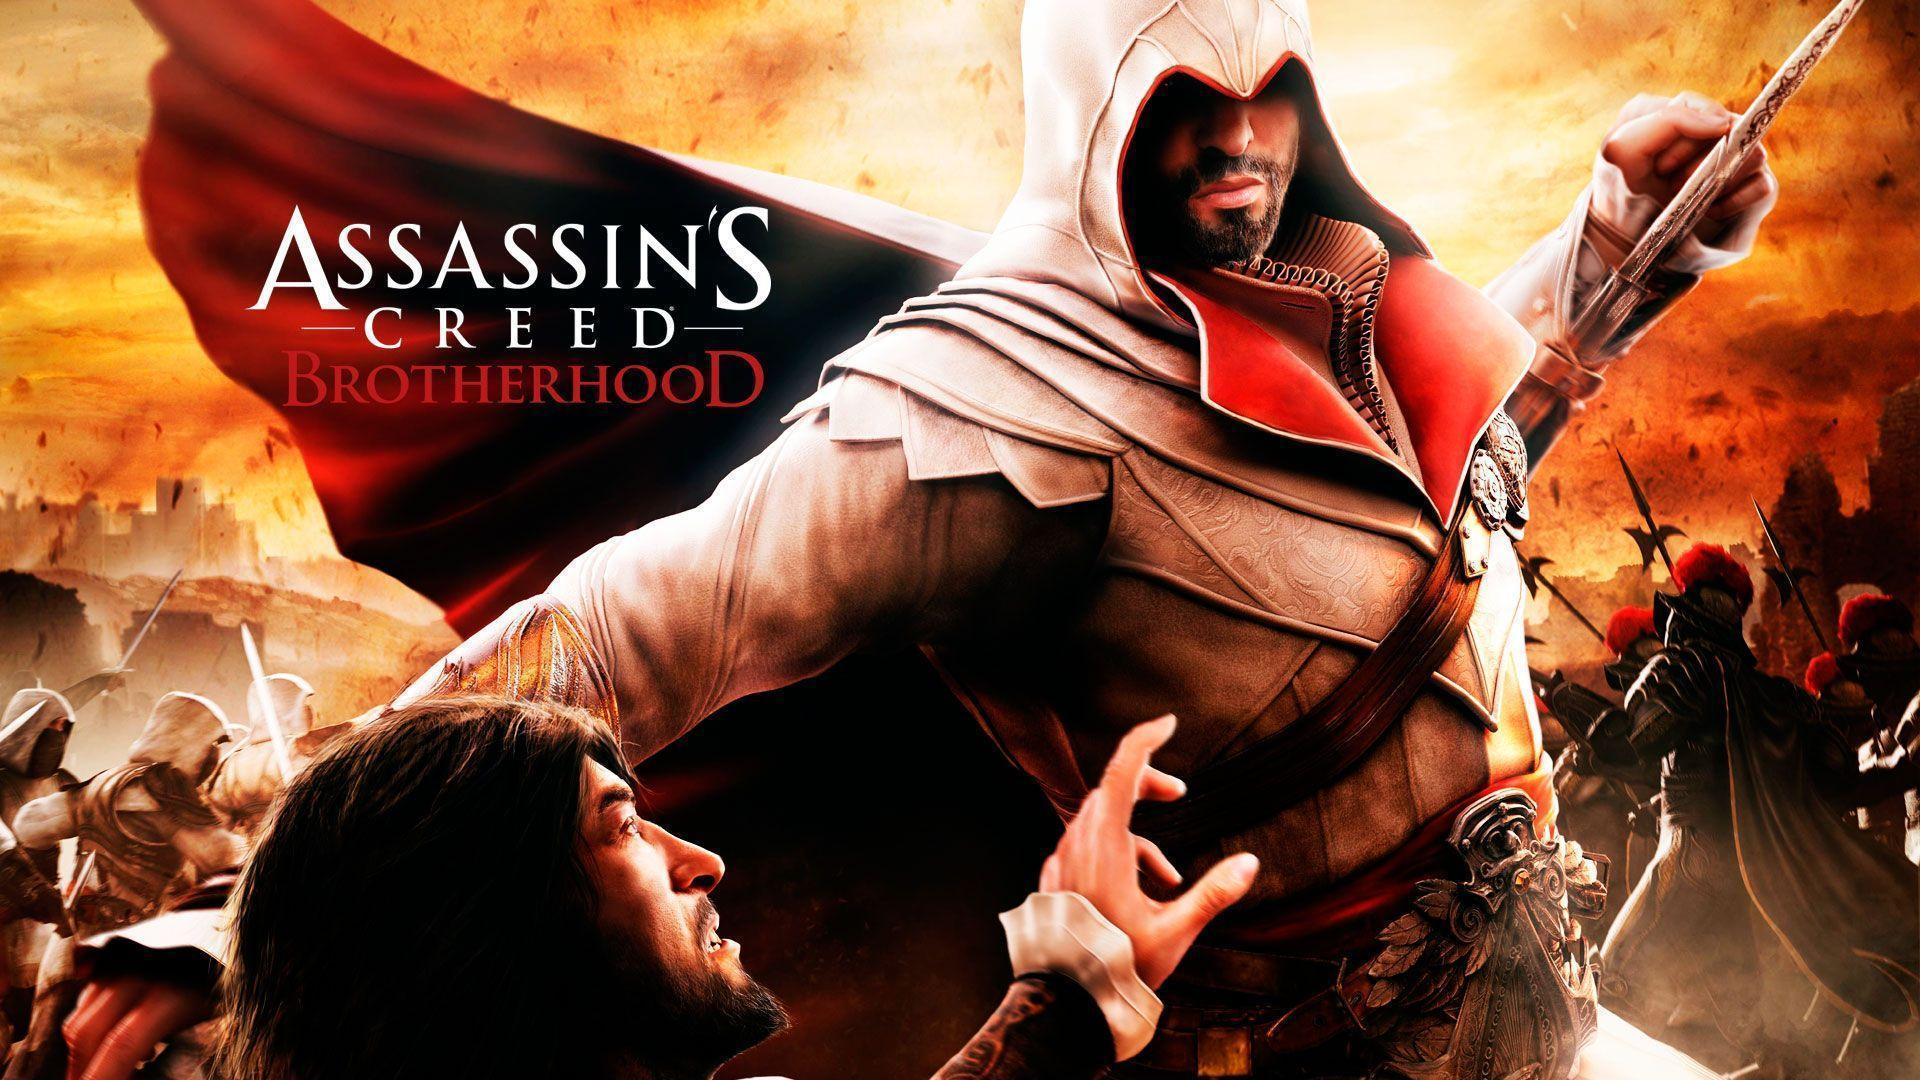 Assassin&Creed Brotherhood 2011 Wallpapers